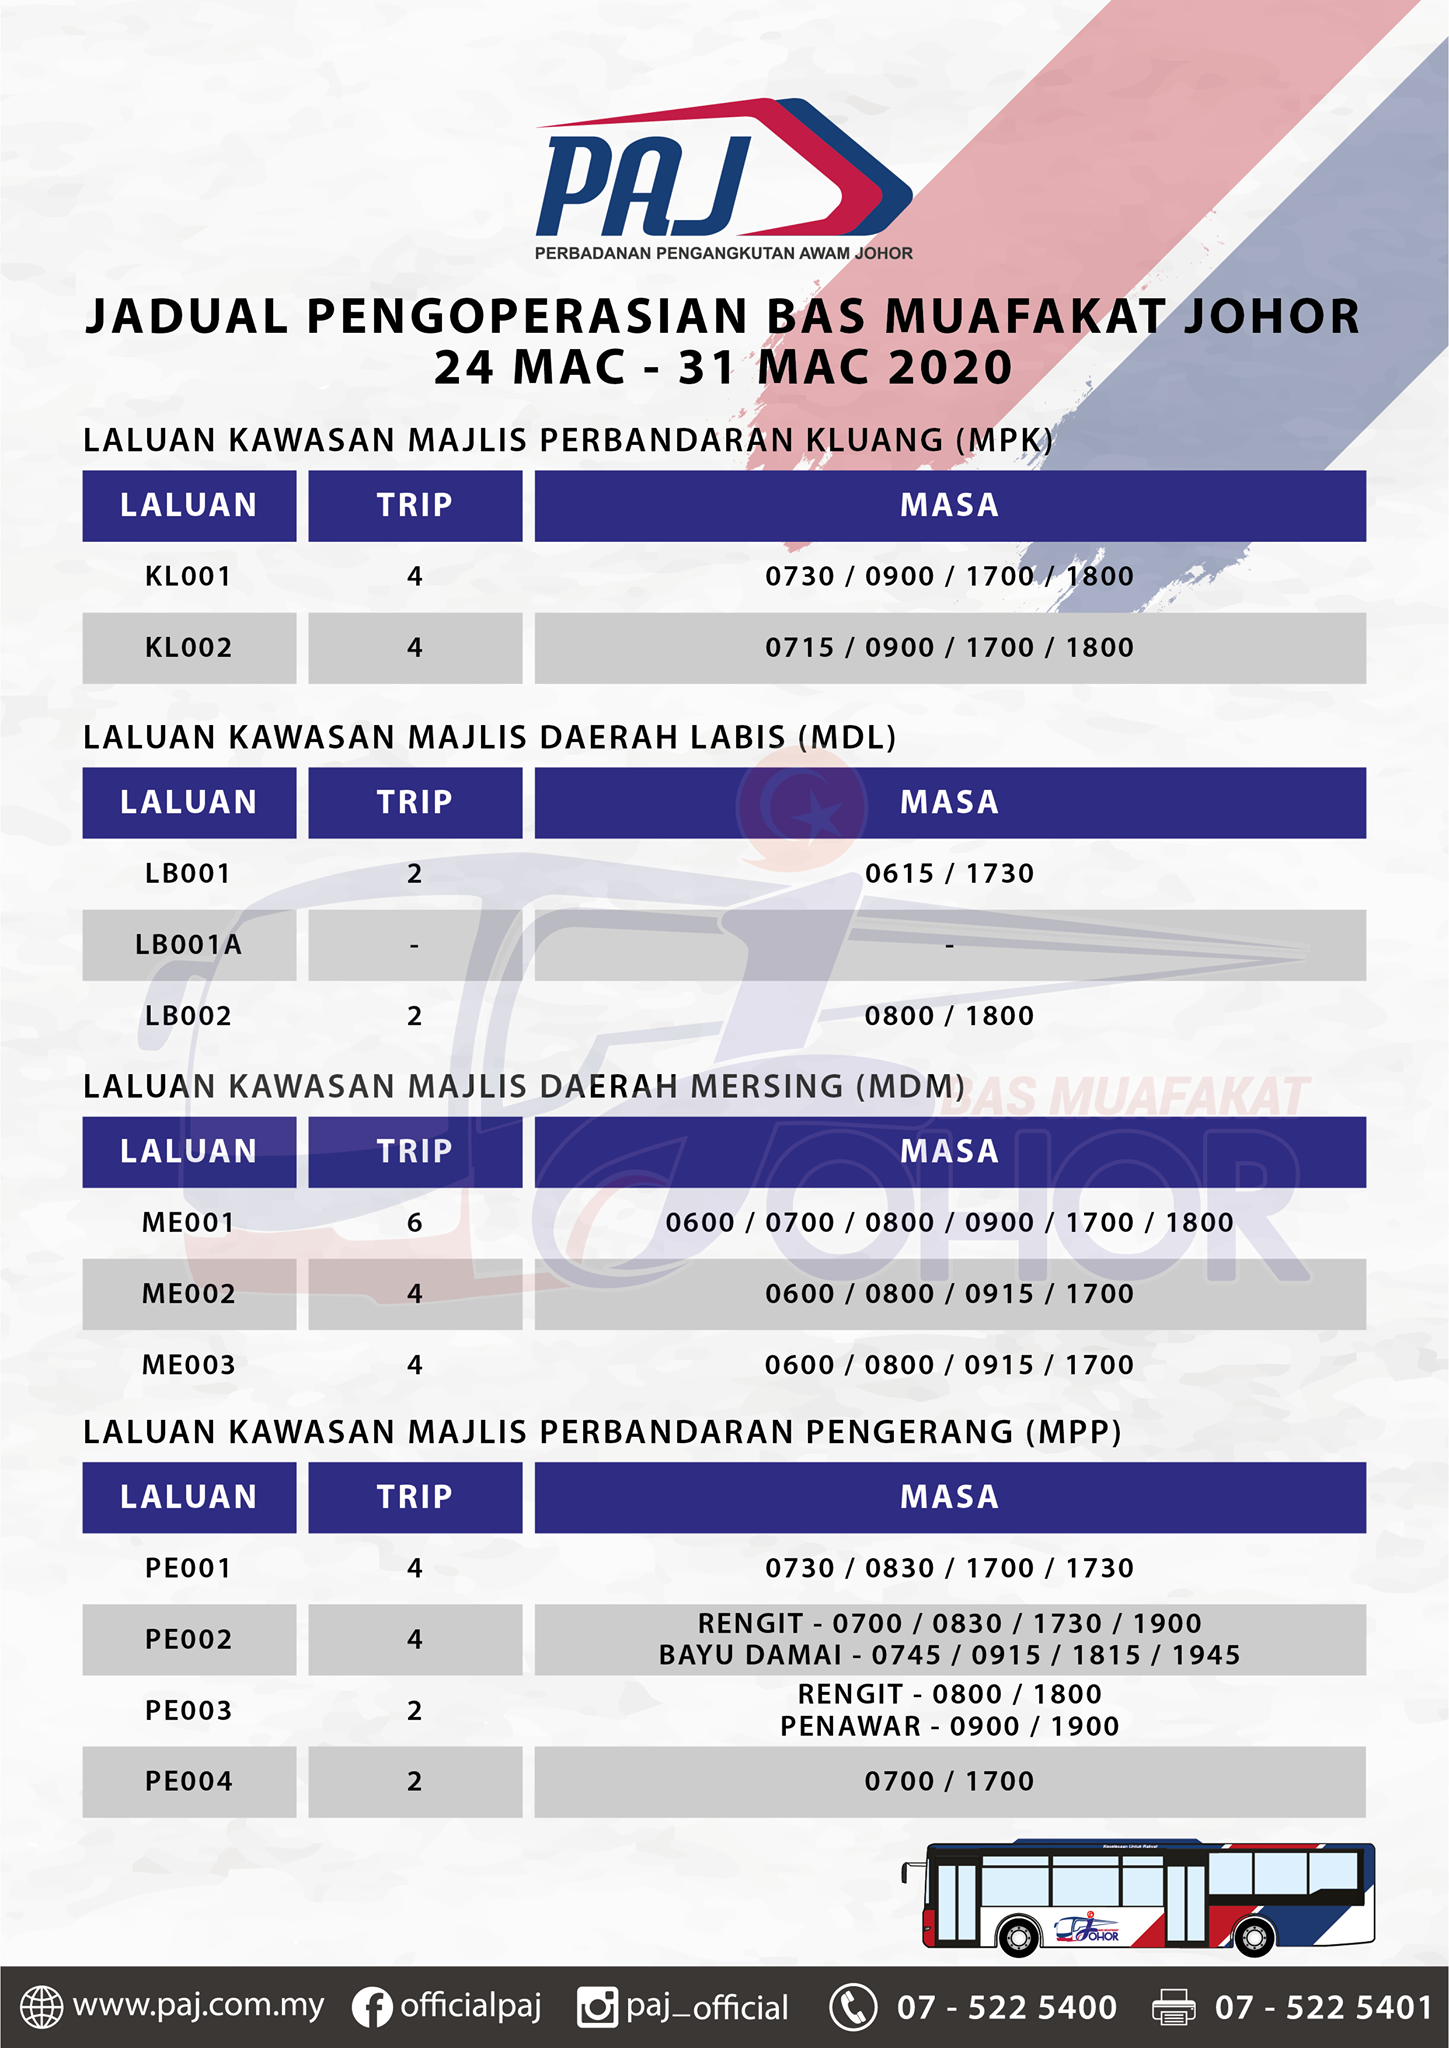 Official PAJ poster on the change in operation hours of Bas Muafakat Johor bus services in Kluang, Labis, Mersing and Pengerang districts